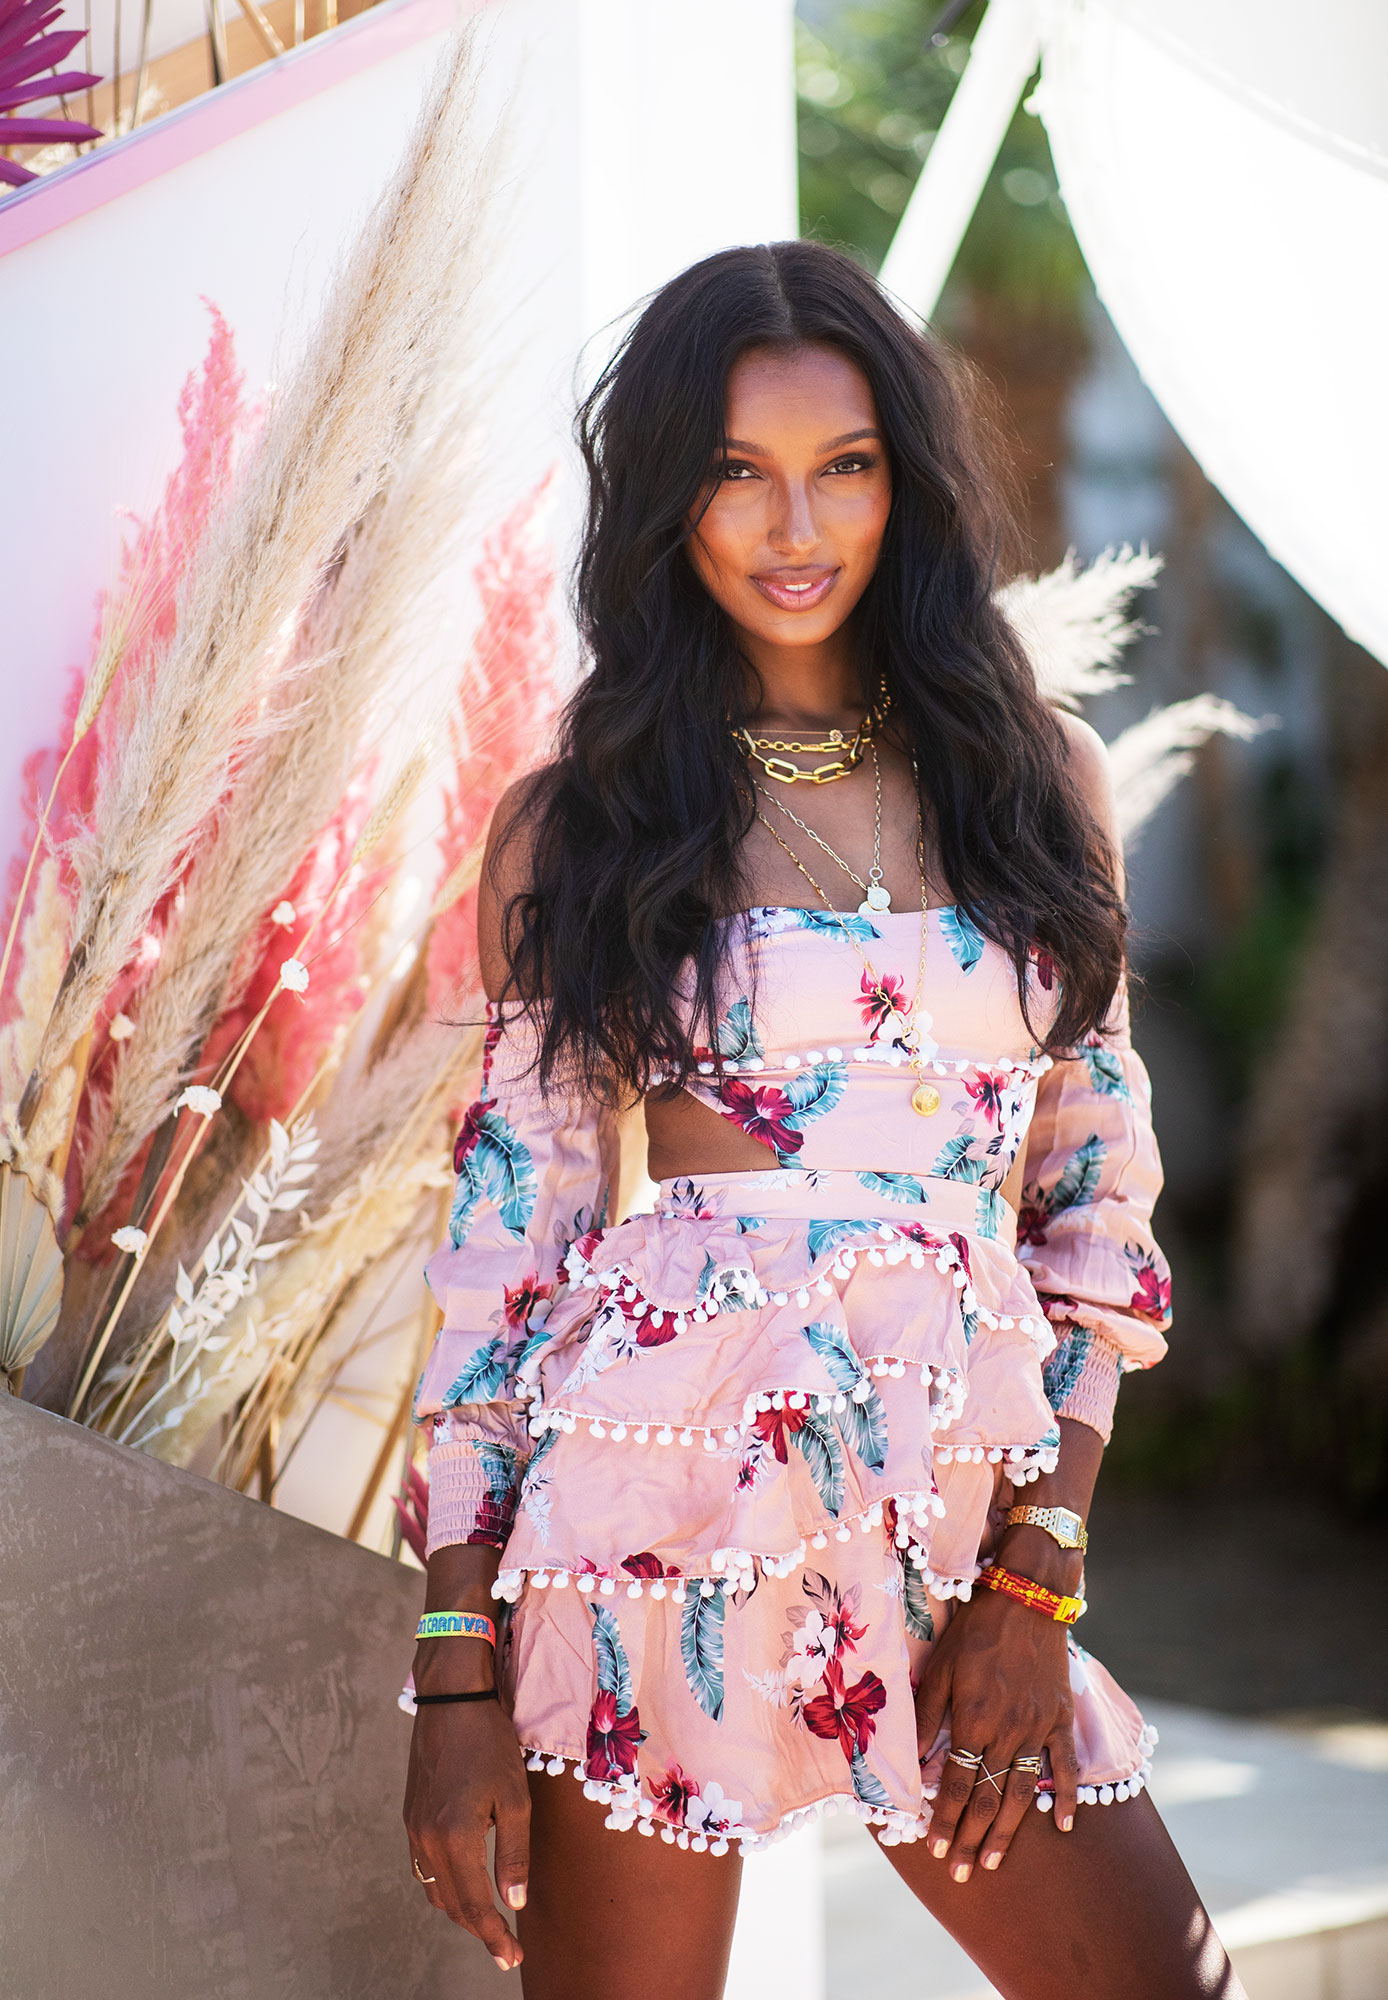 Jasmine Tookes coachella fashion - Ruffles and pom-poms upped the flirty factor of the model's flowery mini at the Revolve Festival on Saturday, April 13.